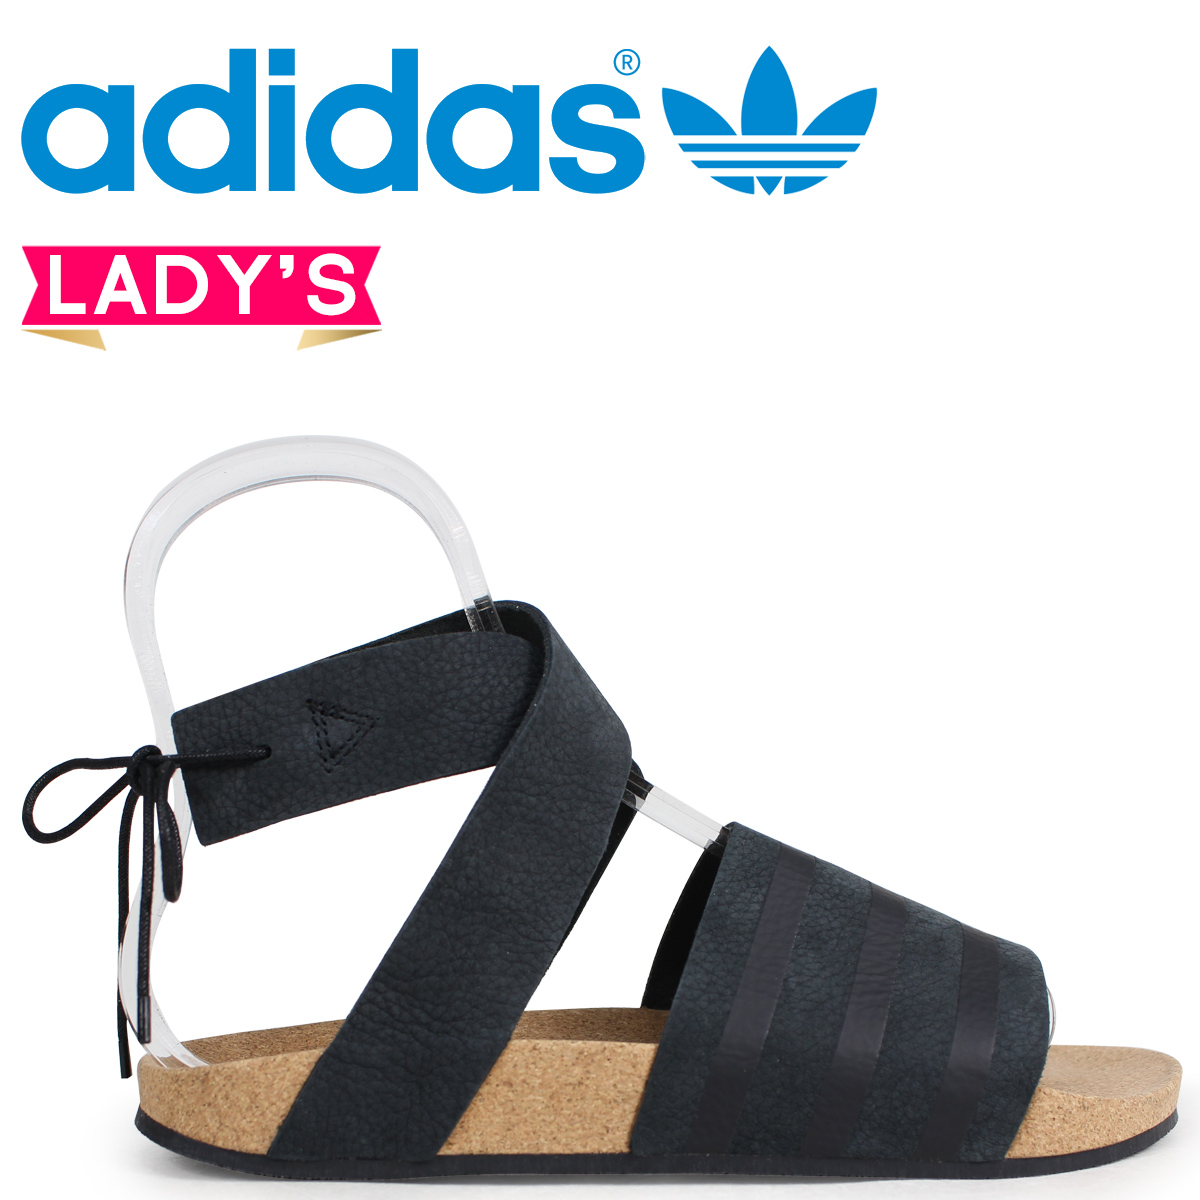 2d235024ba0 adidas Originals ad lied Adidas Lady s sandals ADILETTE ANKLE WRAP W CM8167  black originals  load planned Shinnyu load in reservation product 4 10 ...